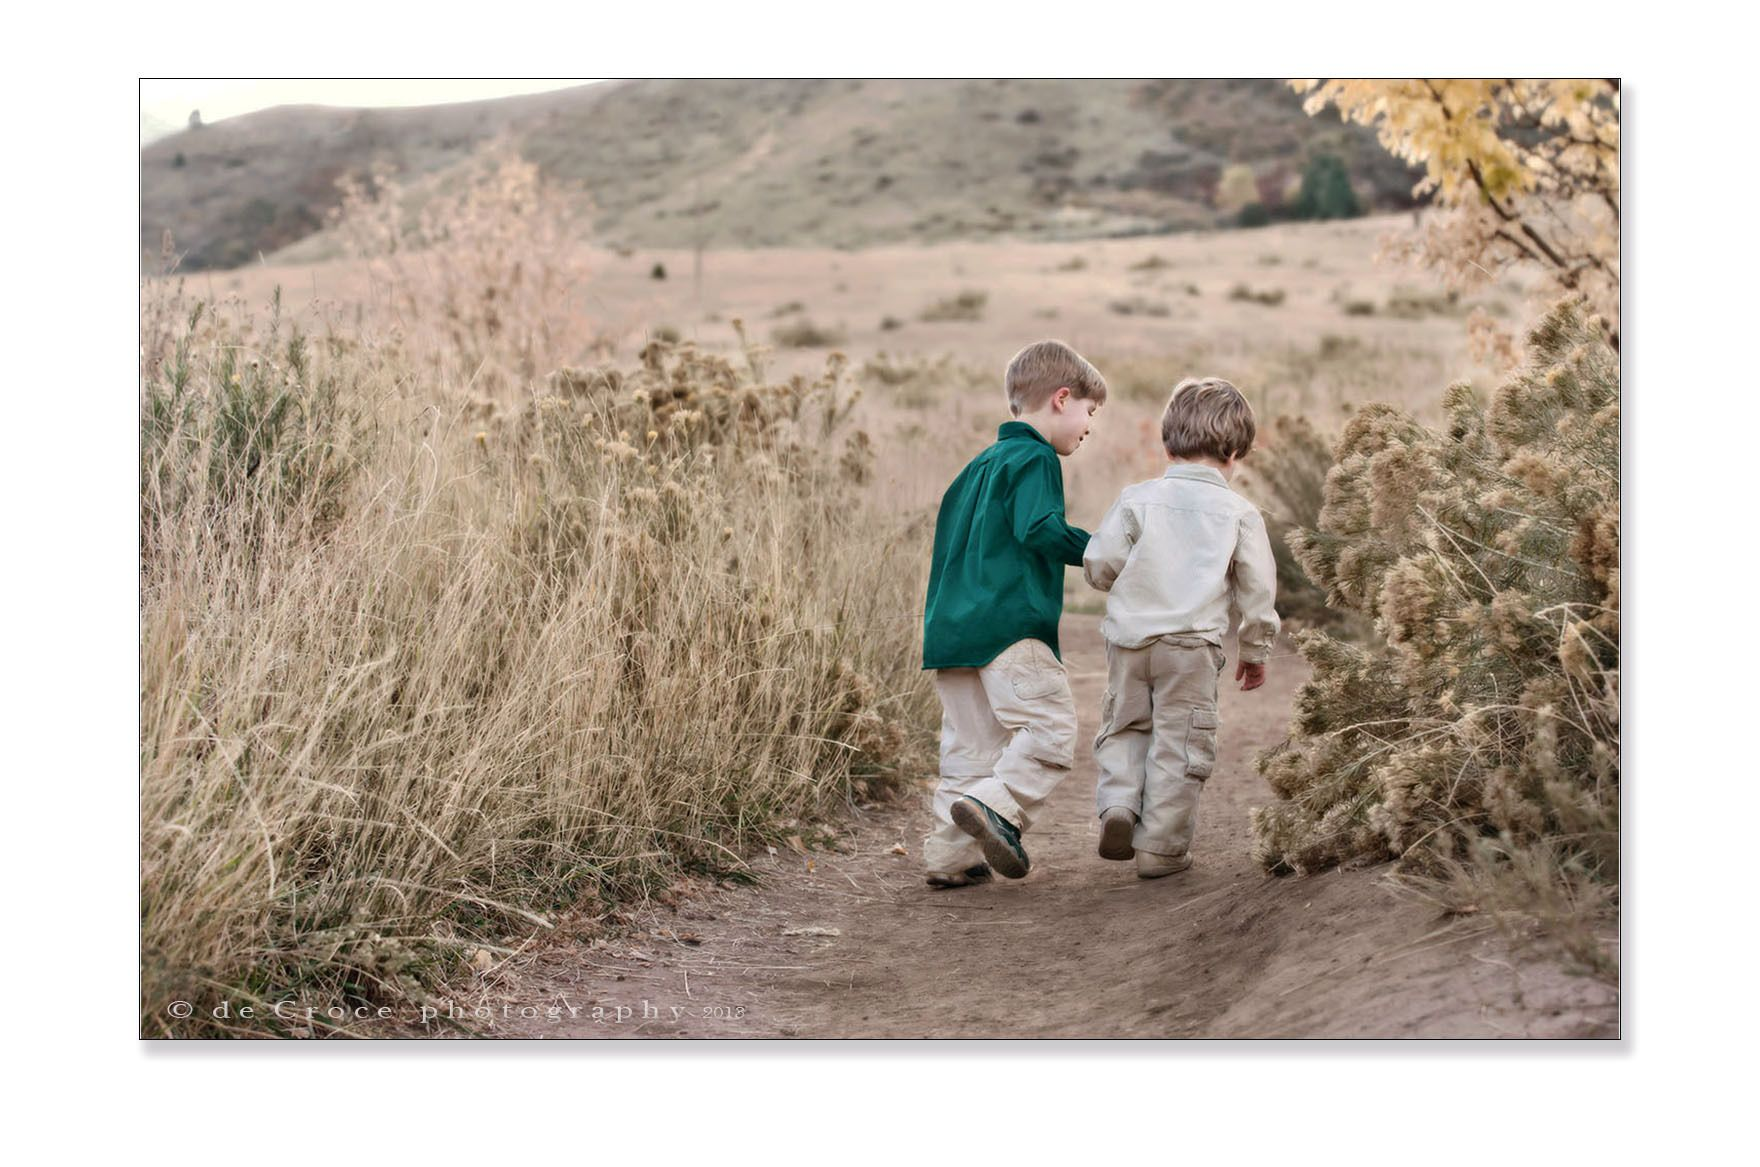 Lifestyle-Photography-Colorado-Boys-On-Path